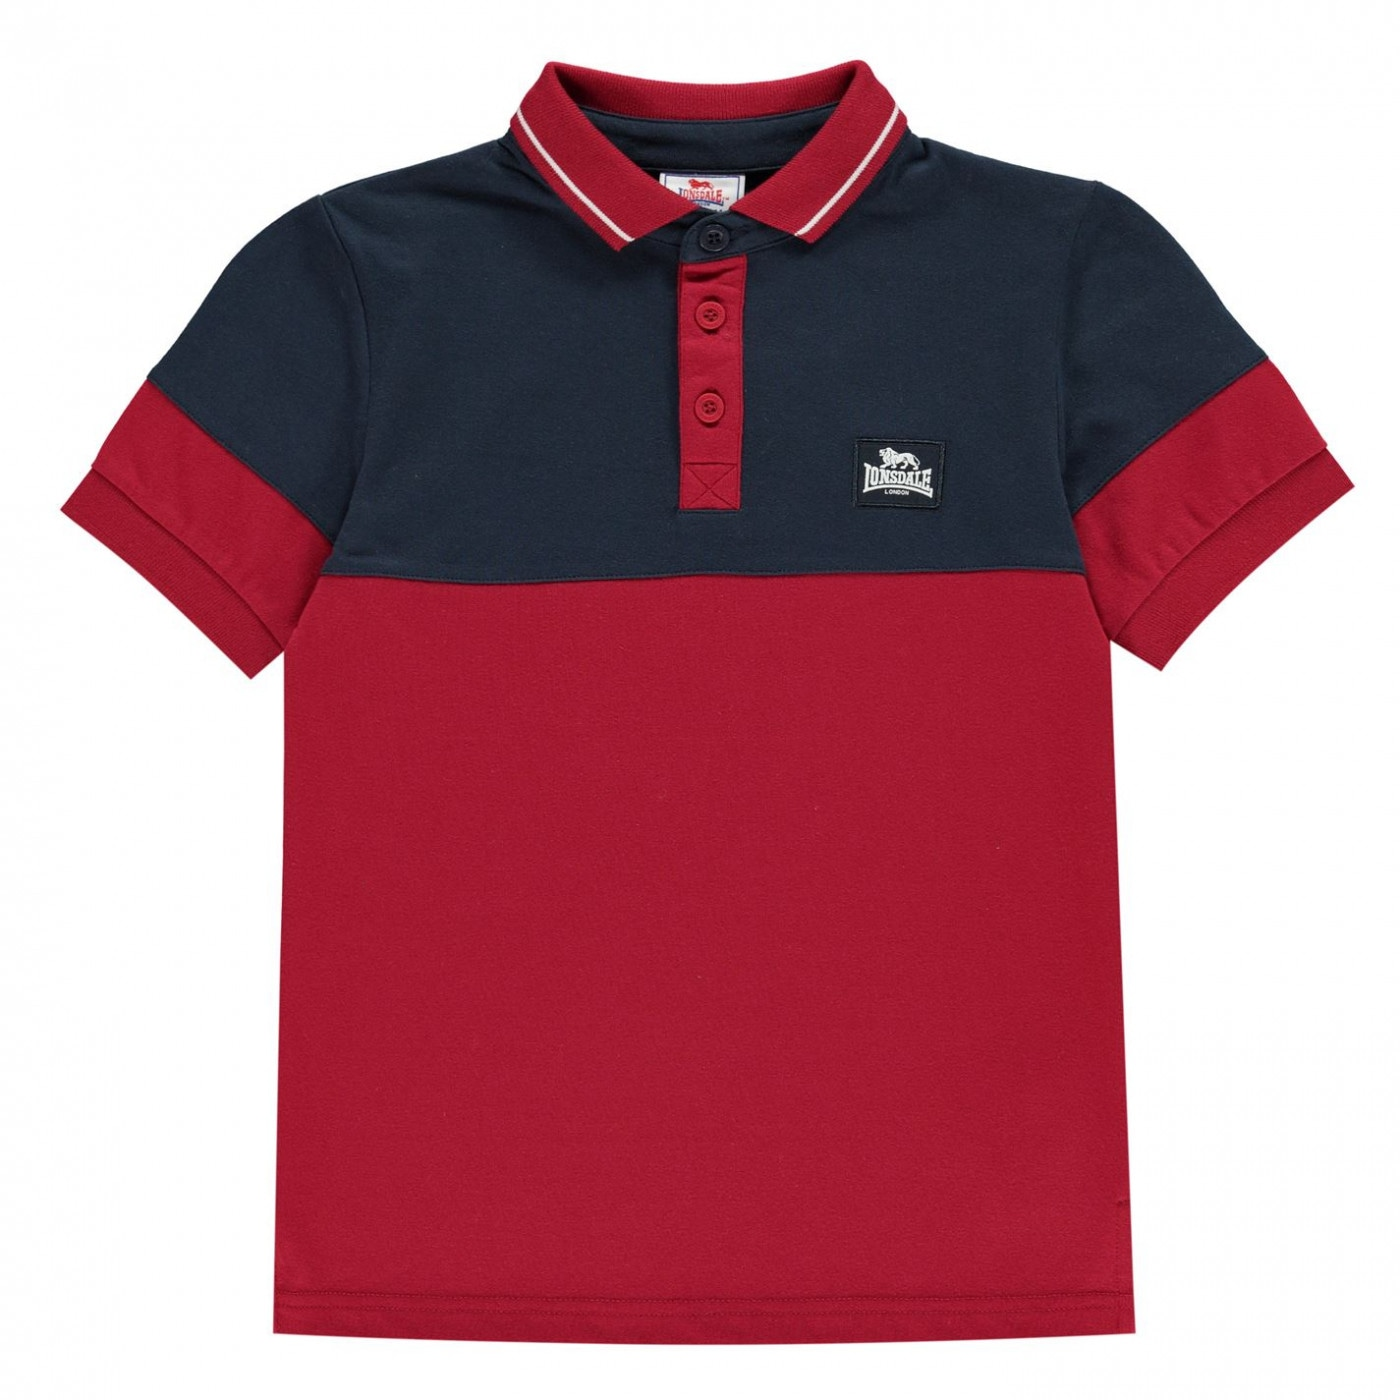 Lonsdale Cut and Sew Jersey Polo Shirt Juniors Boys